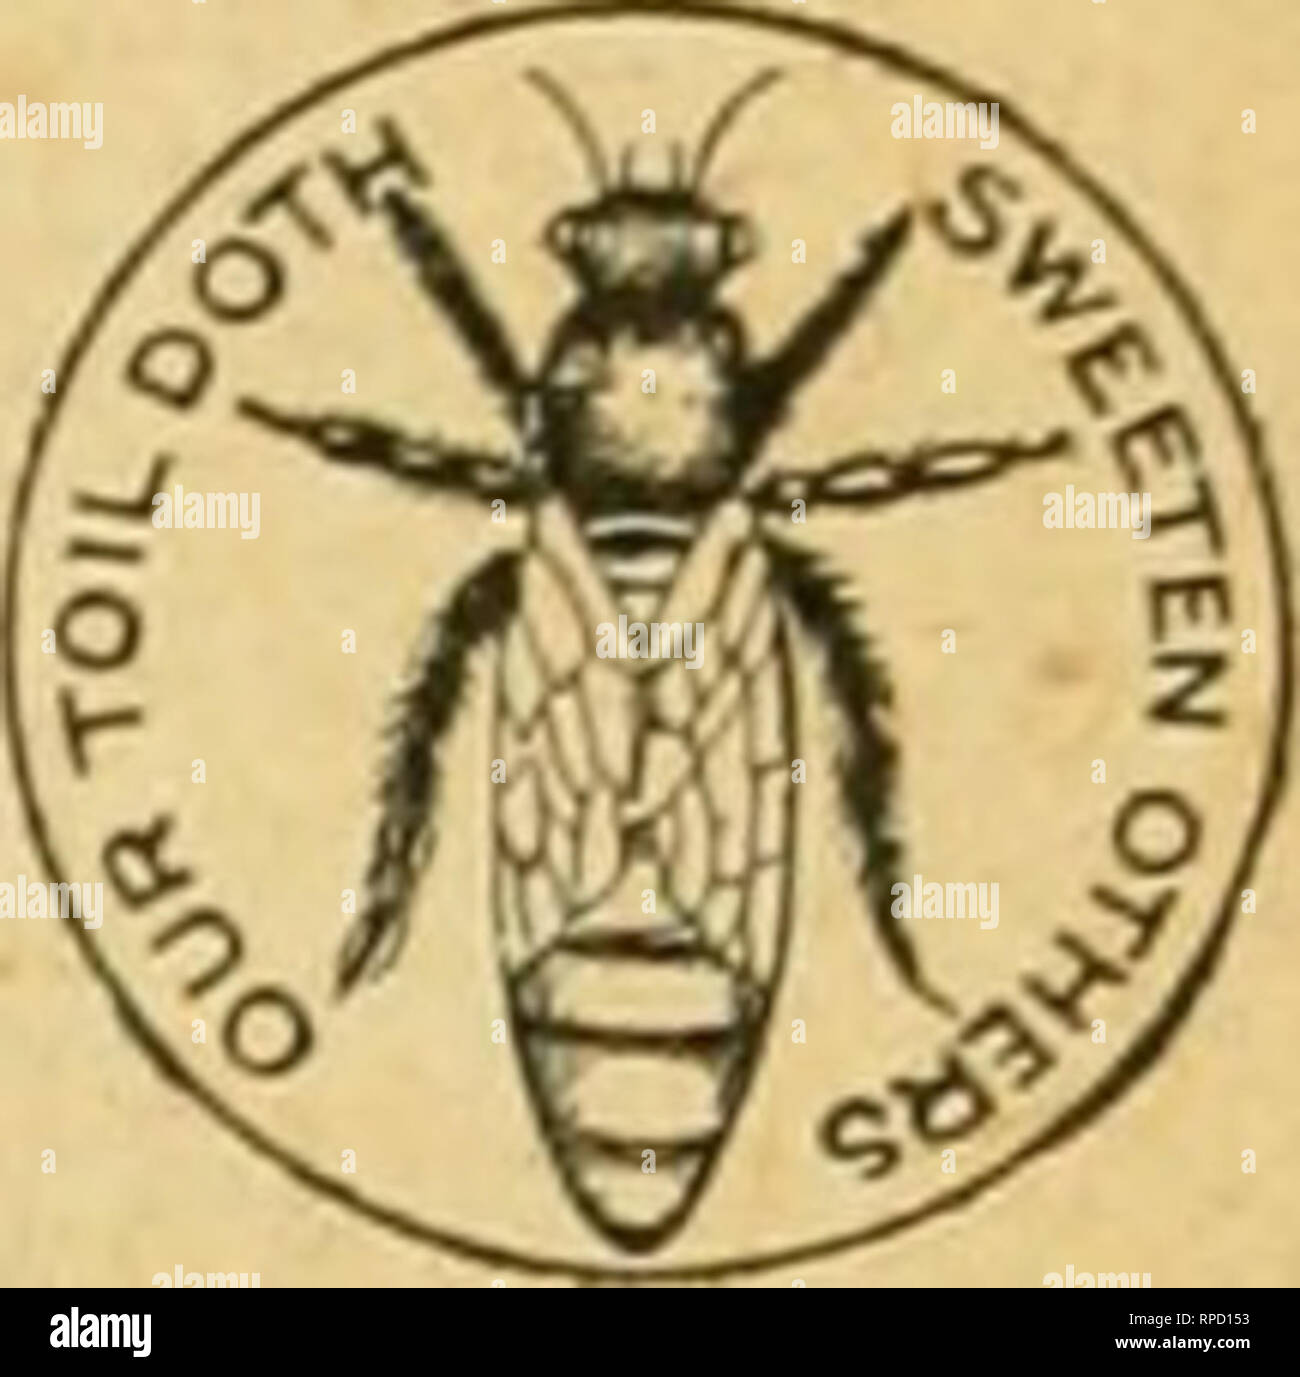 . American bee journal. Bee culture; Bees. QUEENS! Untested Queens, Italian, 60 cents. Tested, $1.00. From honey-gathering stock. We keep in stock a full line of popular Apiarian Supplies. Catalog free. Apiaries-GlenCove,L.I. I. J. STRIN&HAM, 105 Ml YXU, NBW M, N. Y. Please mention Bee Journal when writing A HAXD Y TOOL-HOLDER! Sent by Express, for $1.50 ; or willi the Bee Journal one year—both for $2.00. Every Manufacturer, Miller, Carpenter, Cabinet Maker, Machinist. Wheelwright and Quarryman, Farmer, or any one using a grind- stone, should have one of these Tool-Holders. One boy can do  - Stock Image